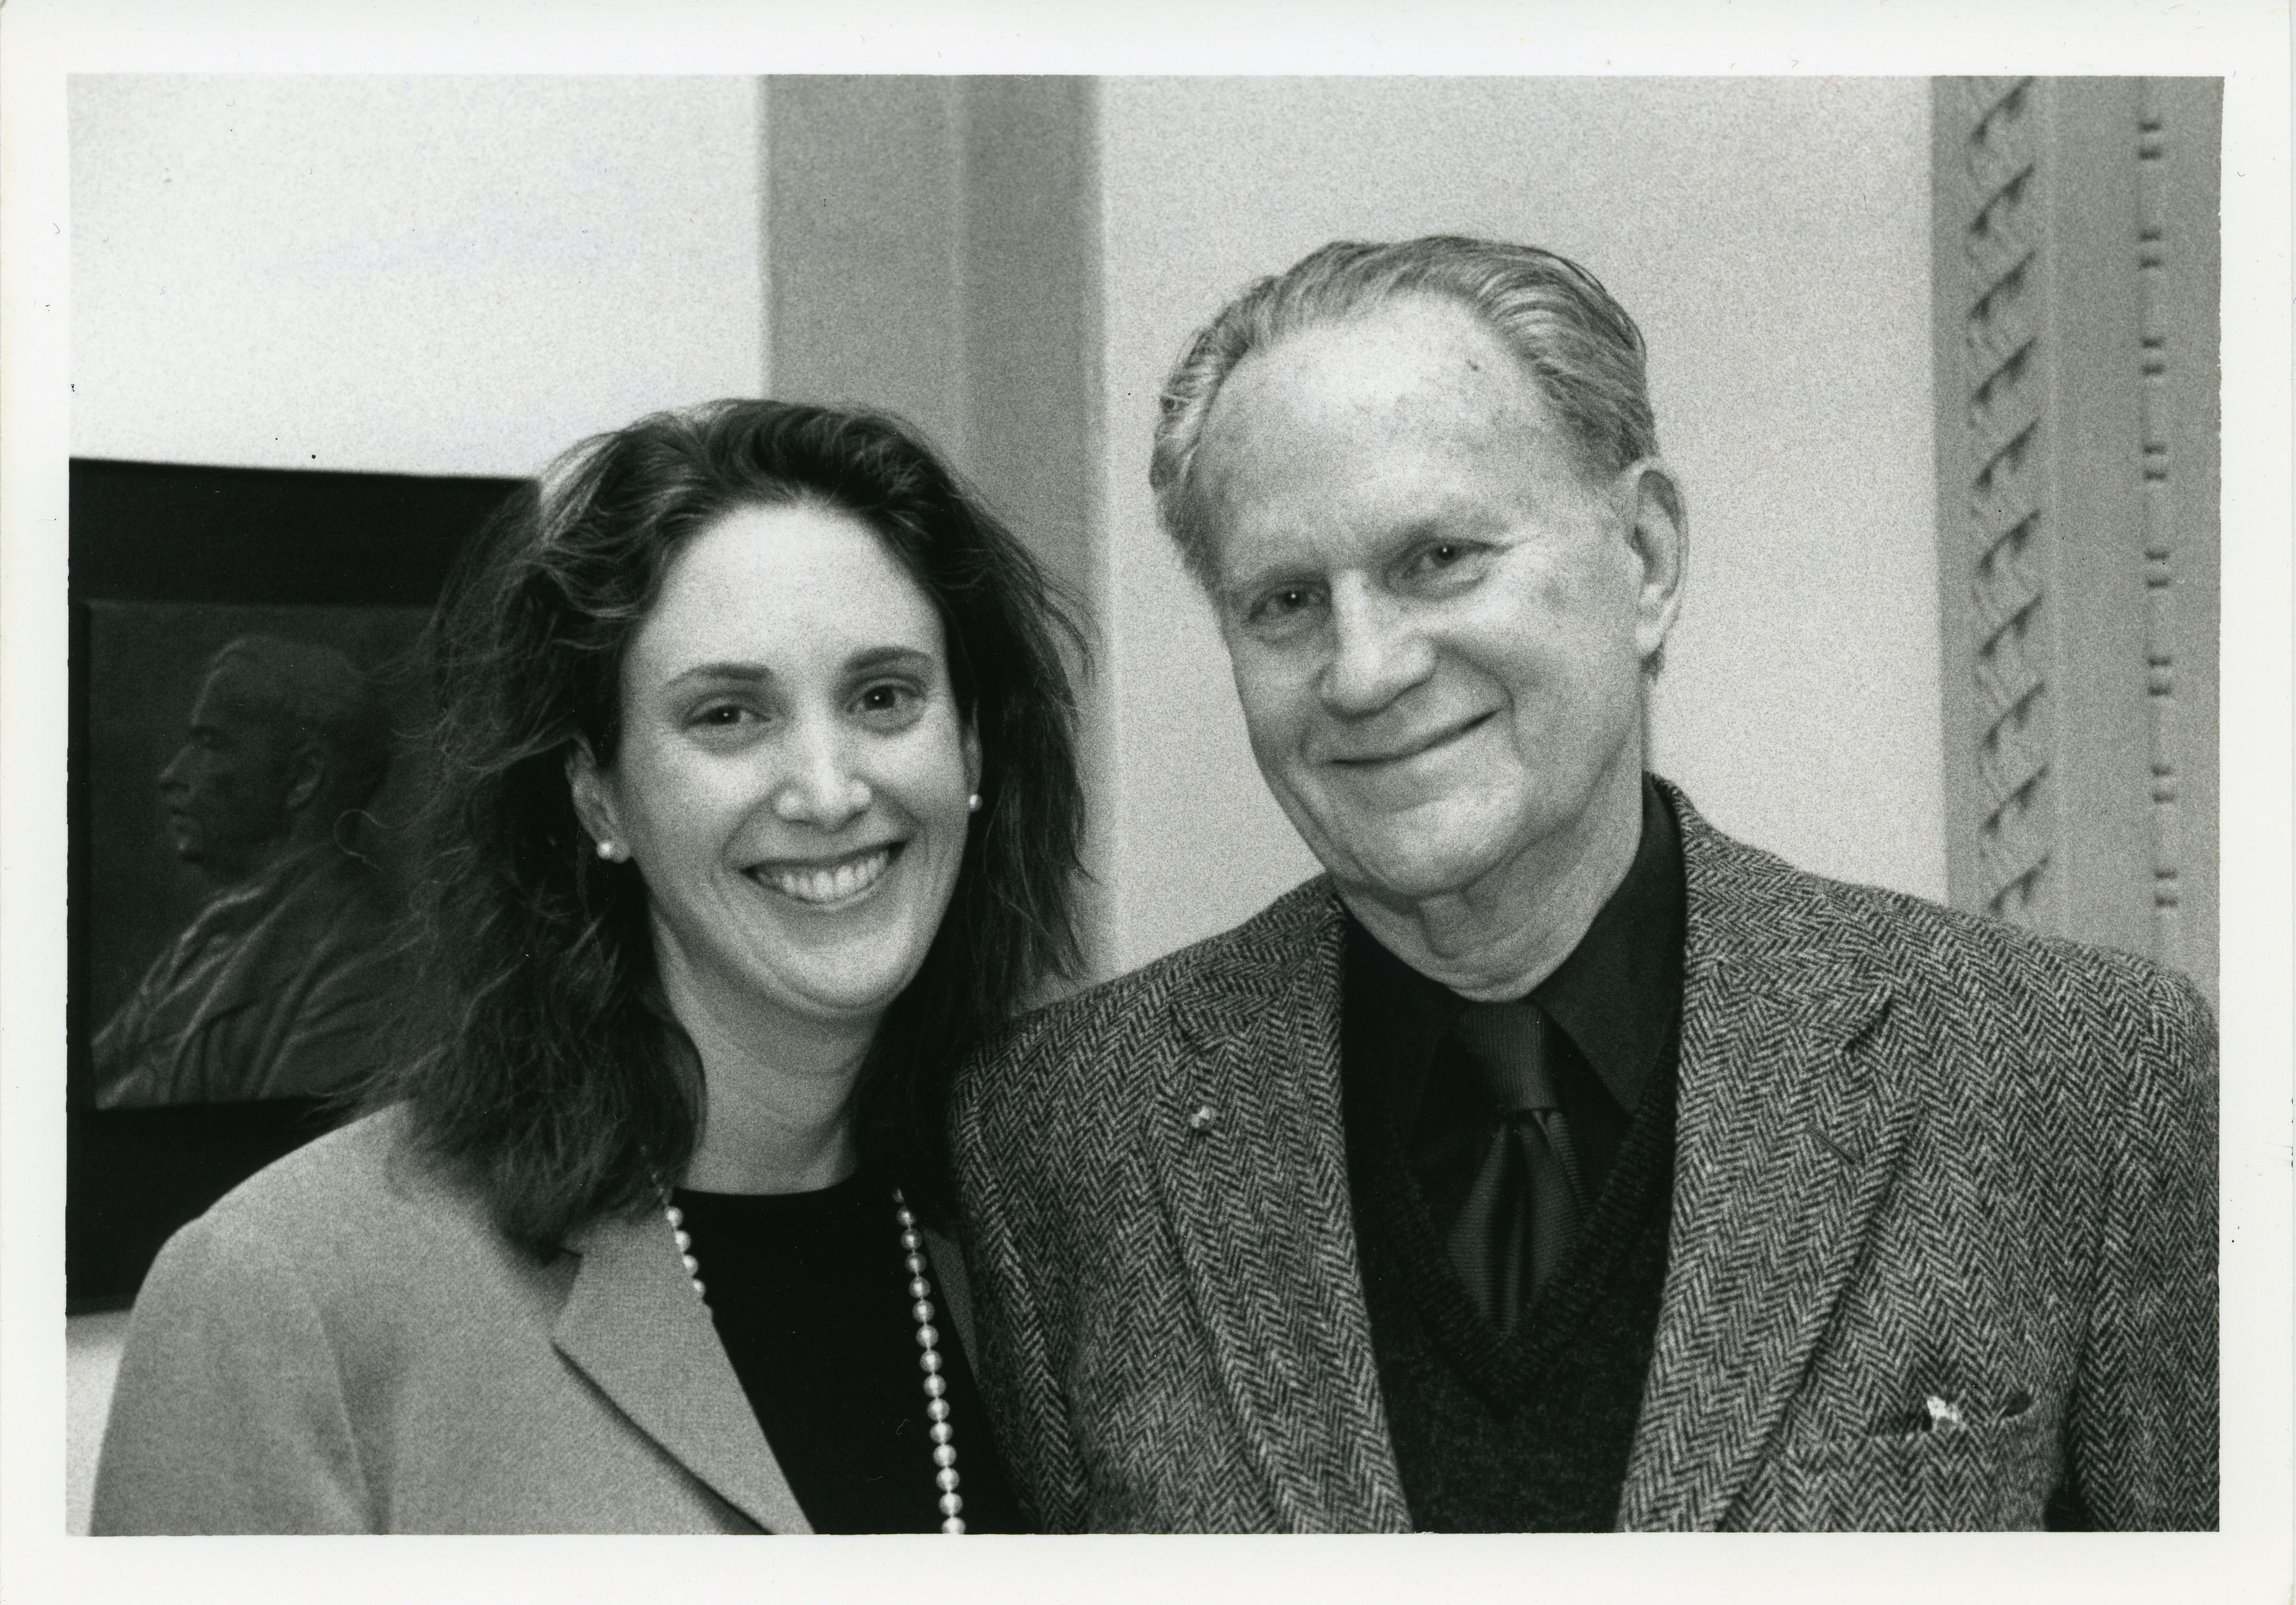 Laura Callanan and Romulus Linney at the American Academy of Arts and Letters, May 2003